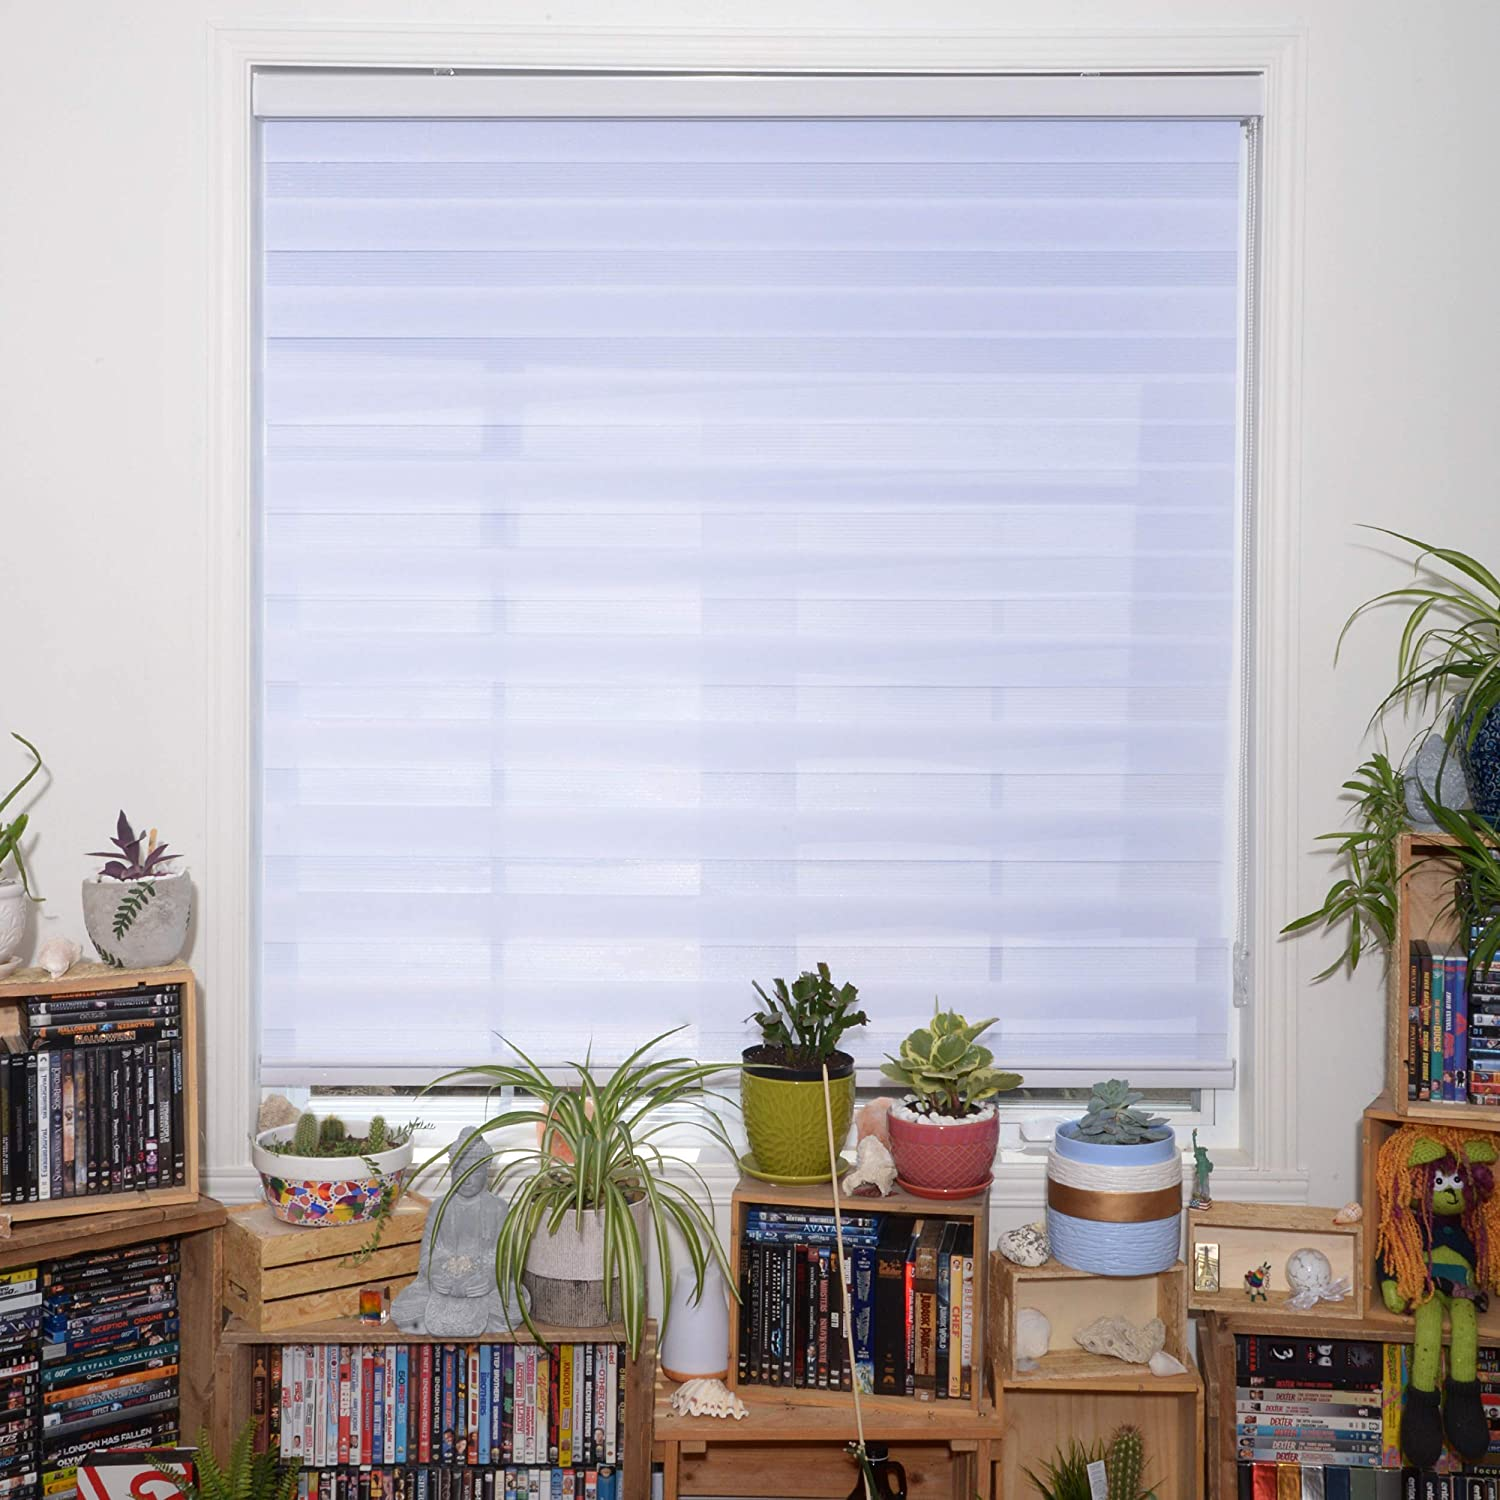 Sheer Horizontal Window Blinds and Shades for Daytime and Nighttime WYMO Zebra Blinds for Windows 38 x 64 inch 20 to 72 inch Wide Light Filtering Roller Shades for Windows with White Valence